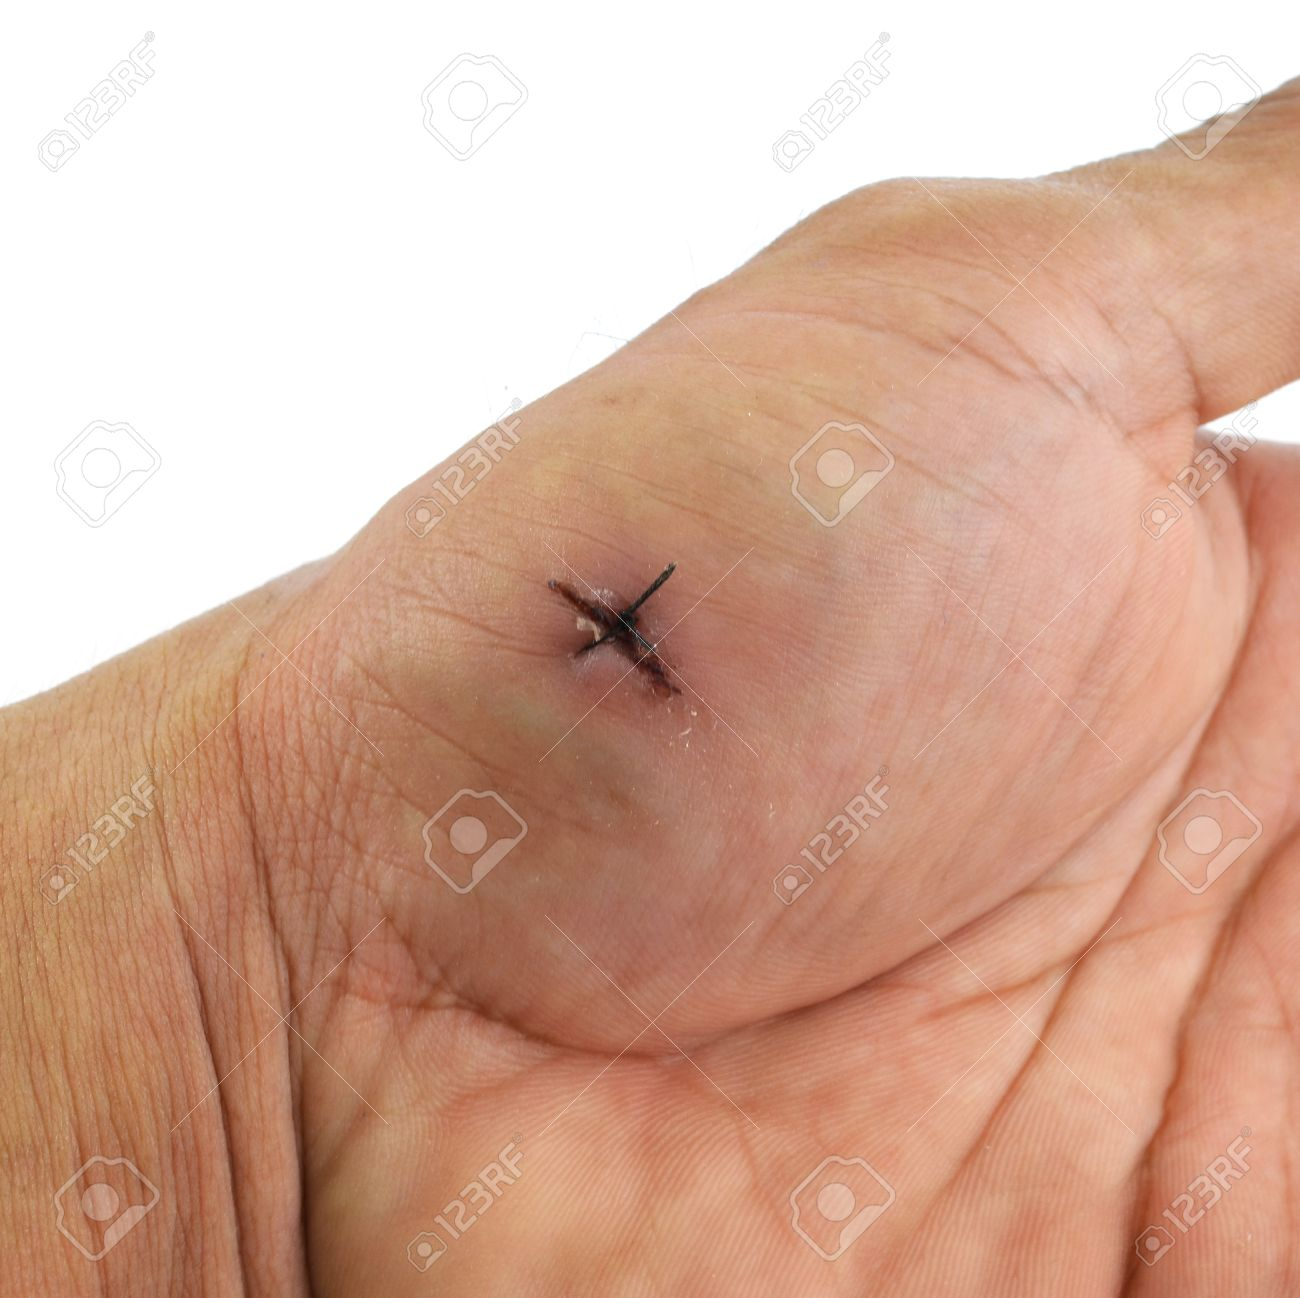 List of Synonyms and Antonyms of the Word: hand surgical stitches